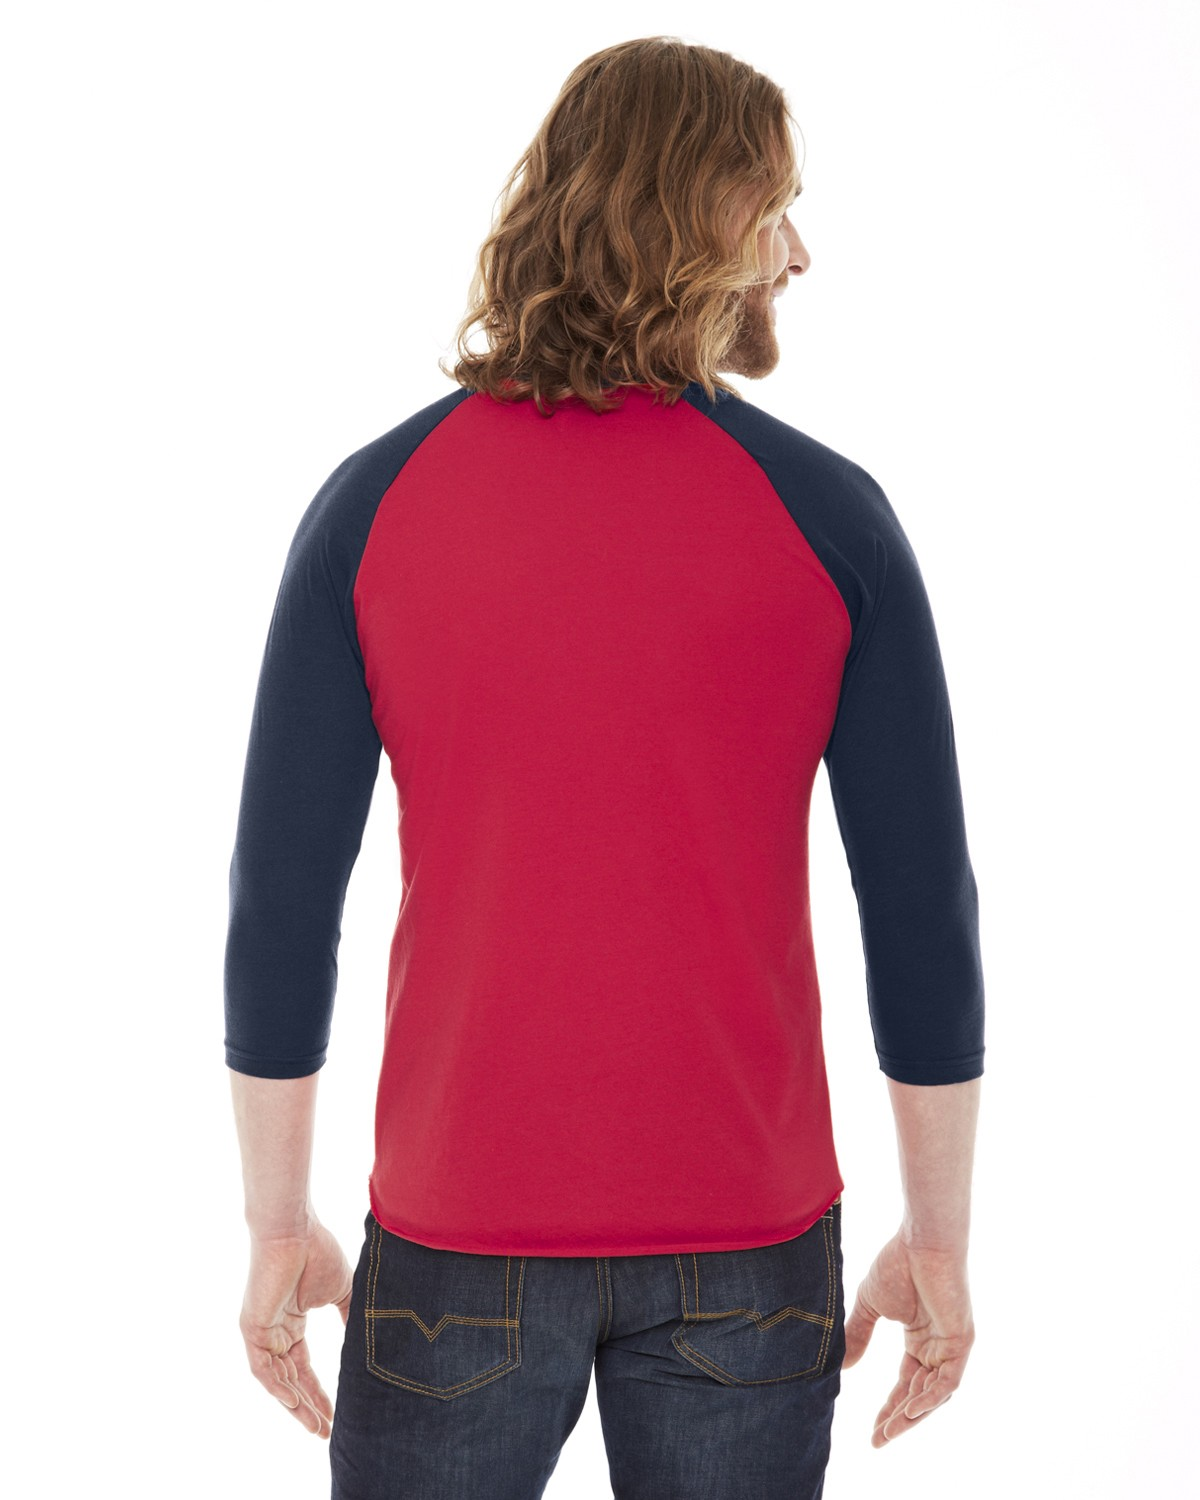 BB453W American Apparel RED/NAVY